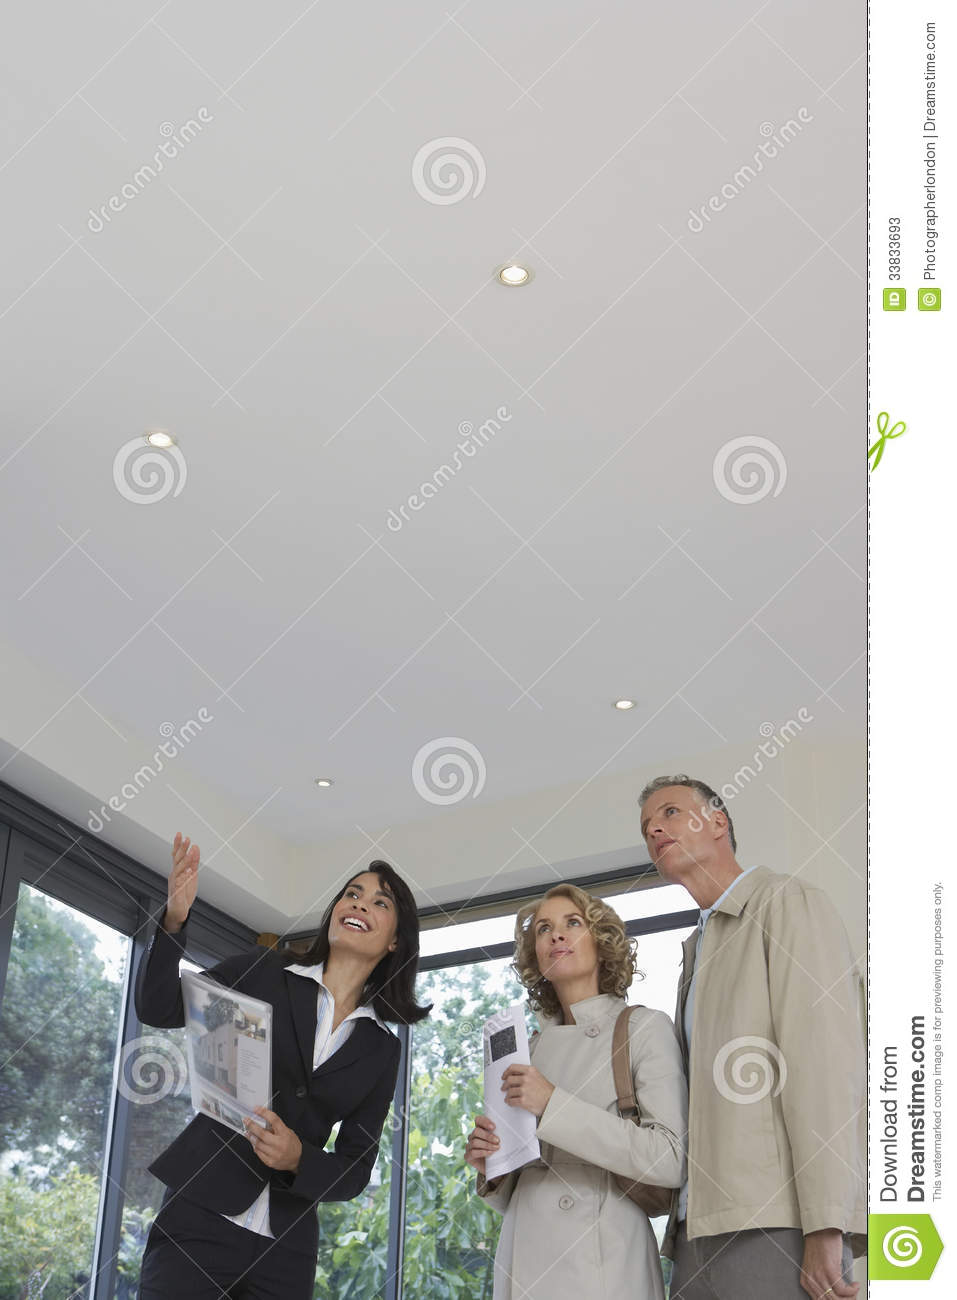 Real Estate Agent And Couple Observing New Property